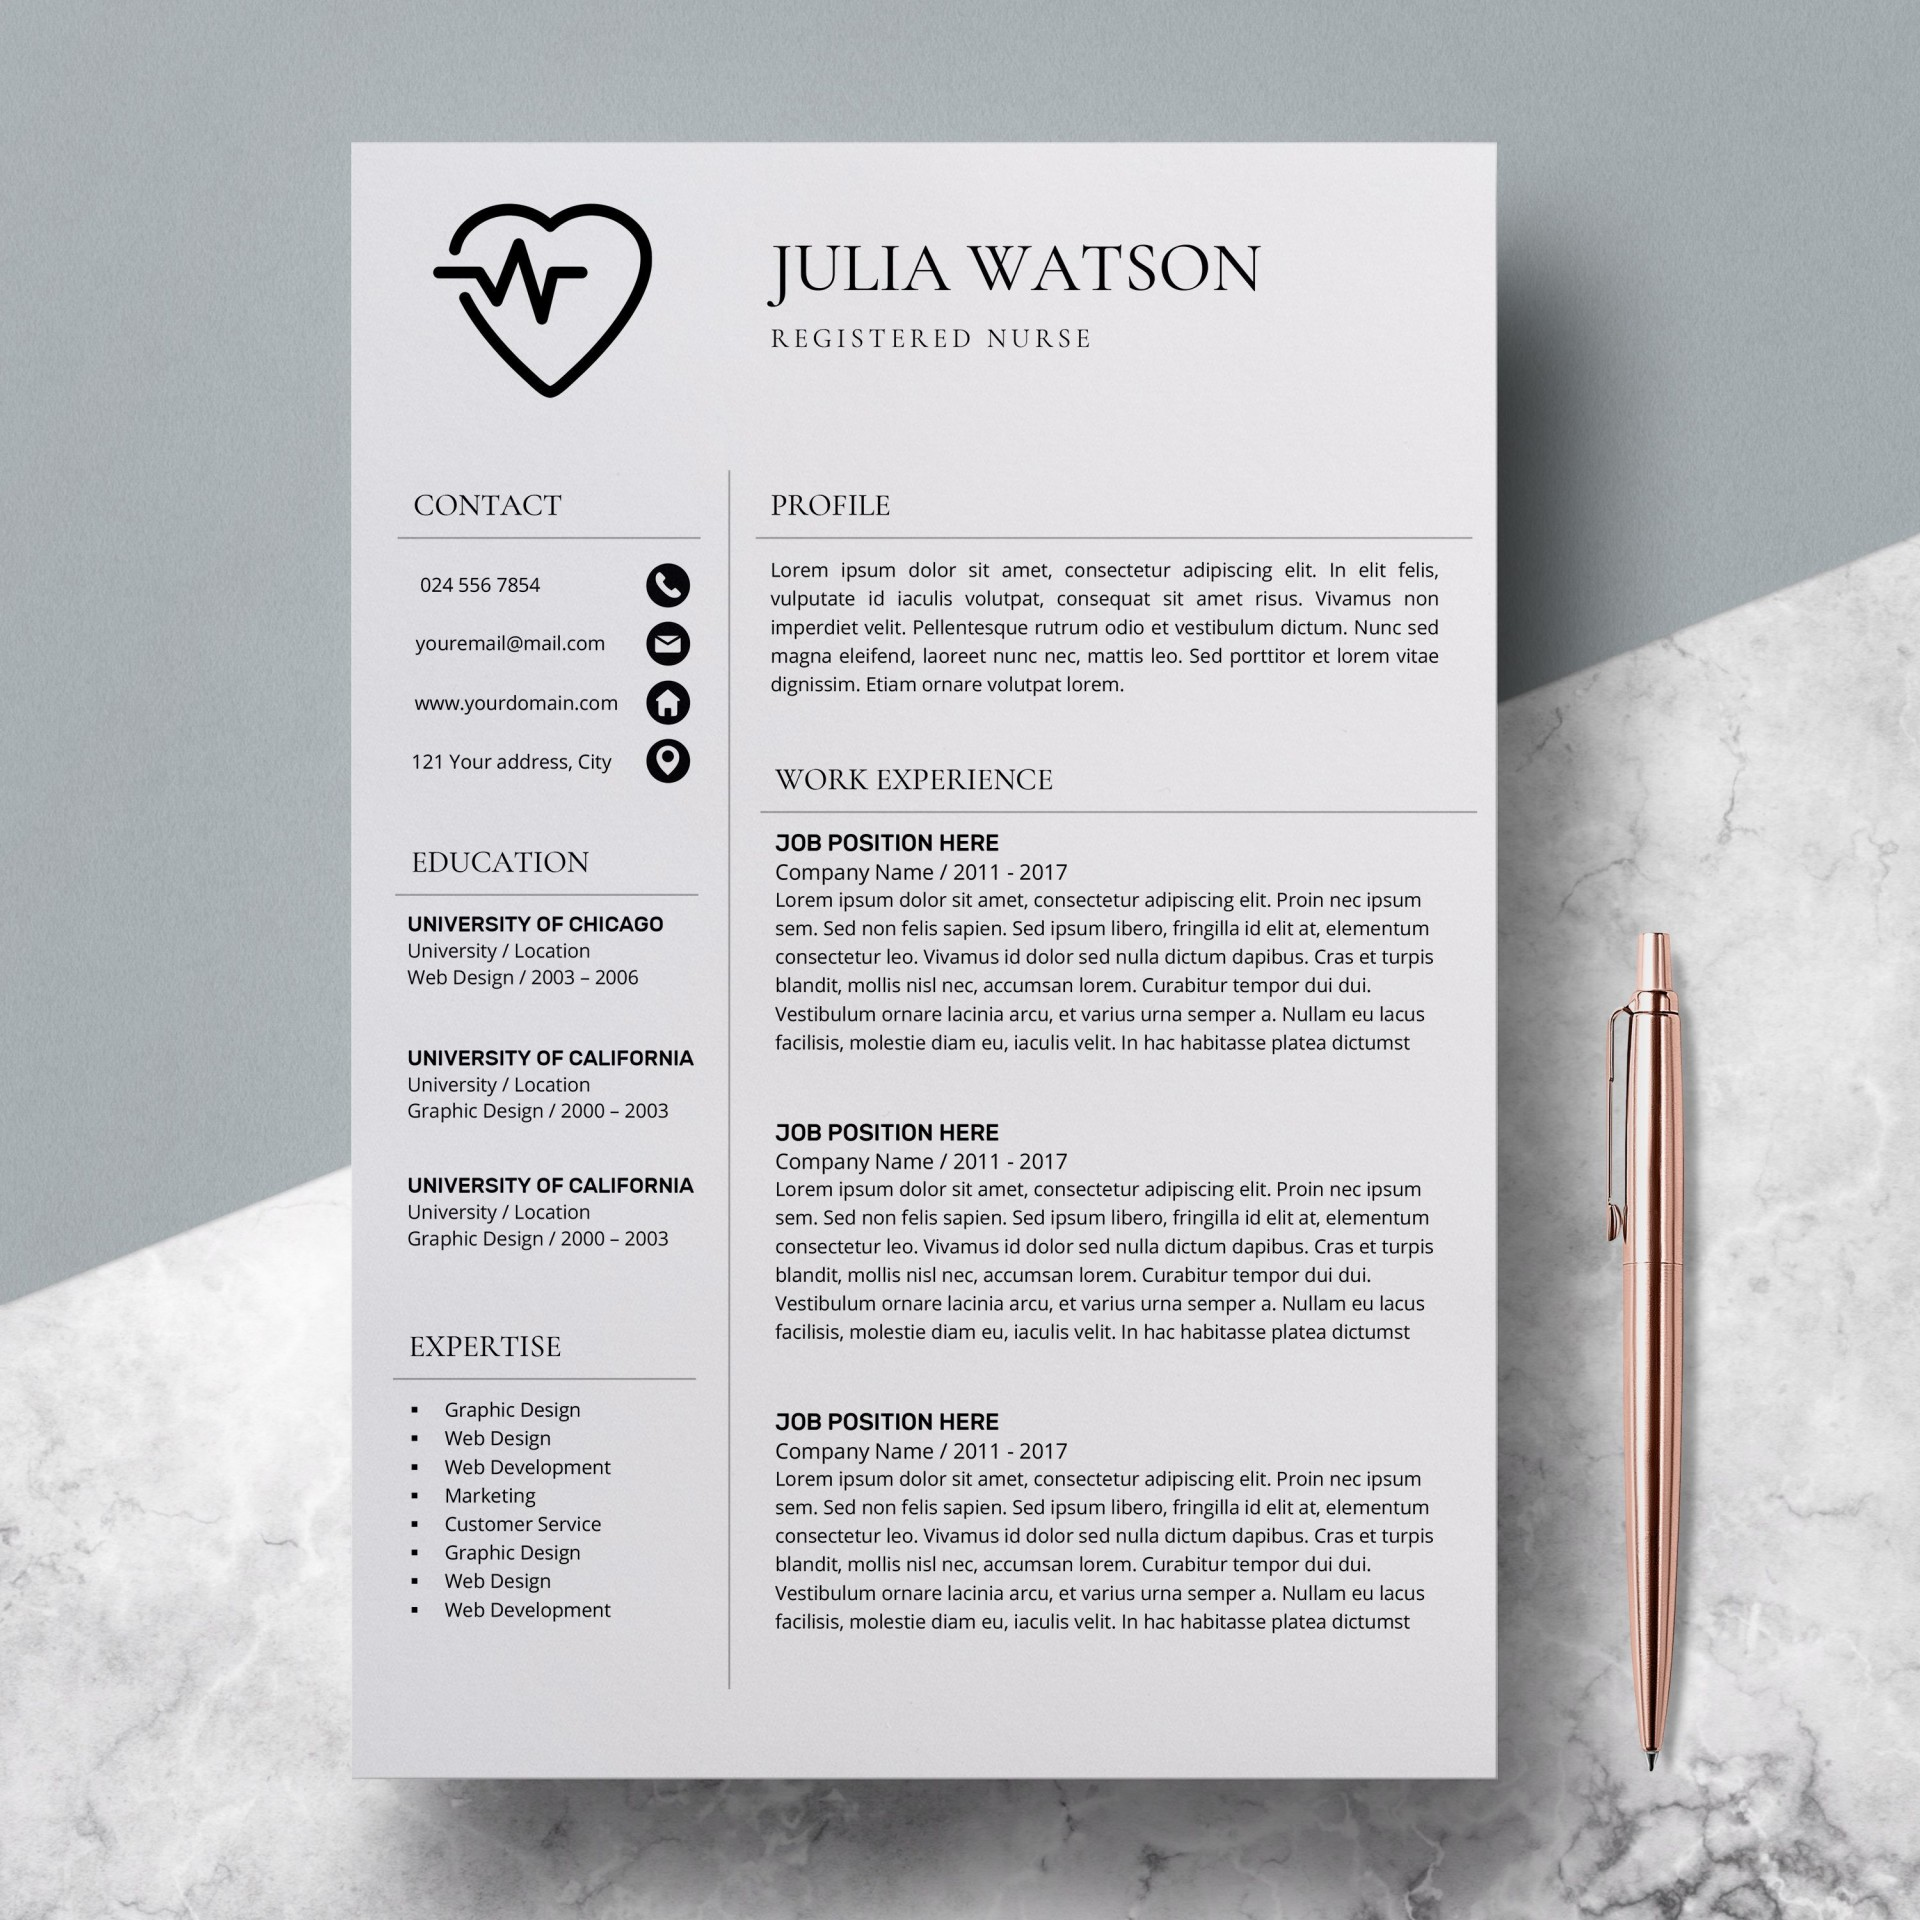 000 Unforgettable Resume Template For Nurse Design  Sample Nursing Assistant With No Experience Rn' Free1920